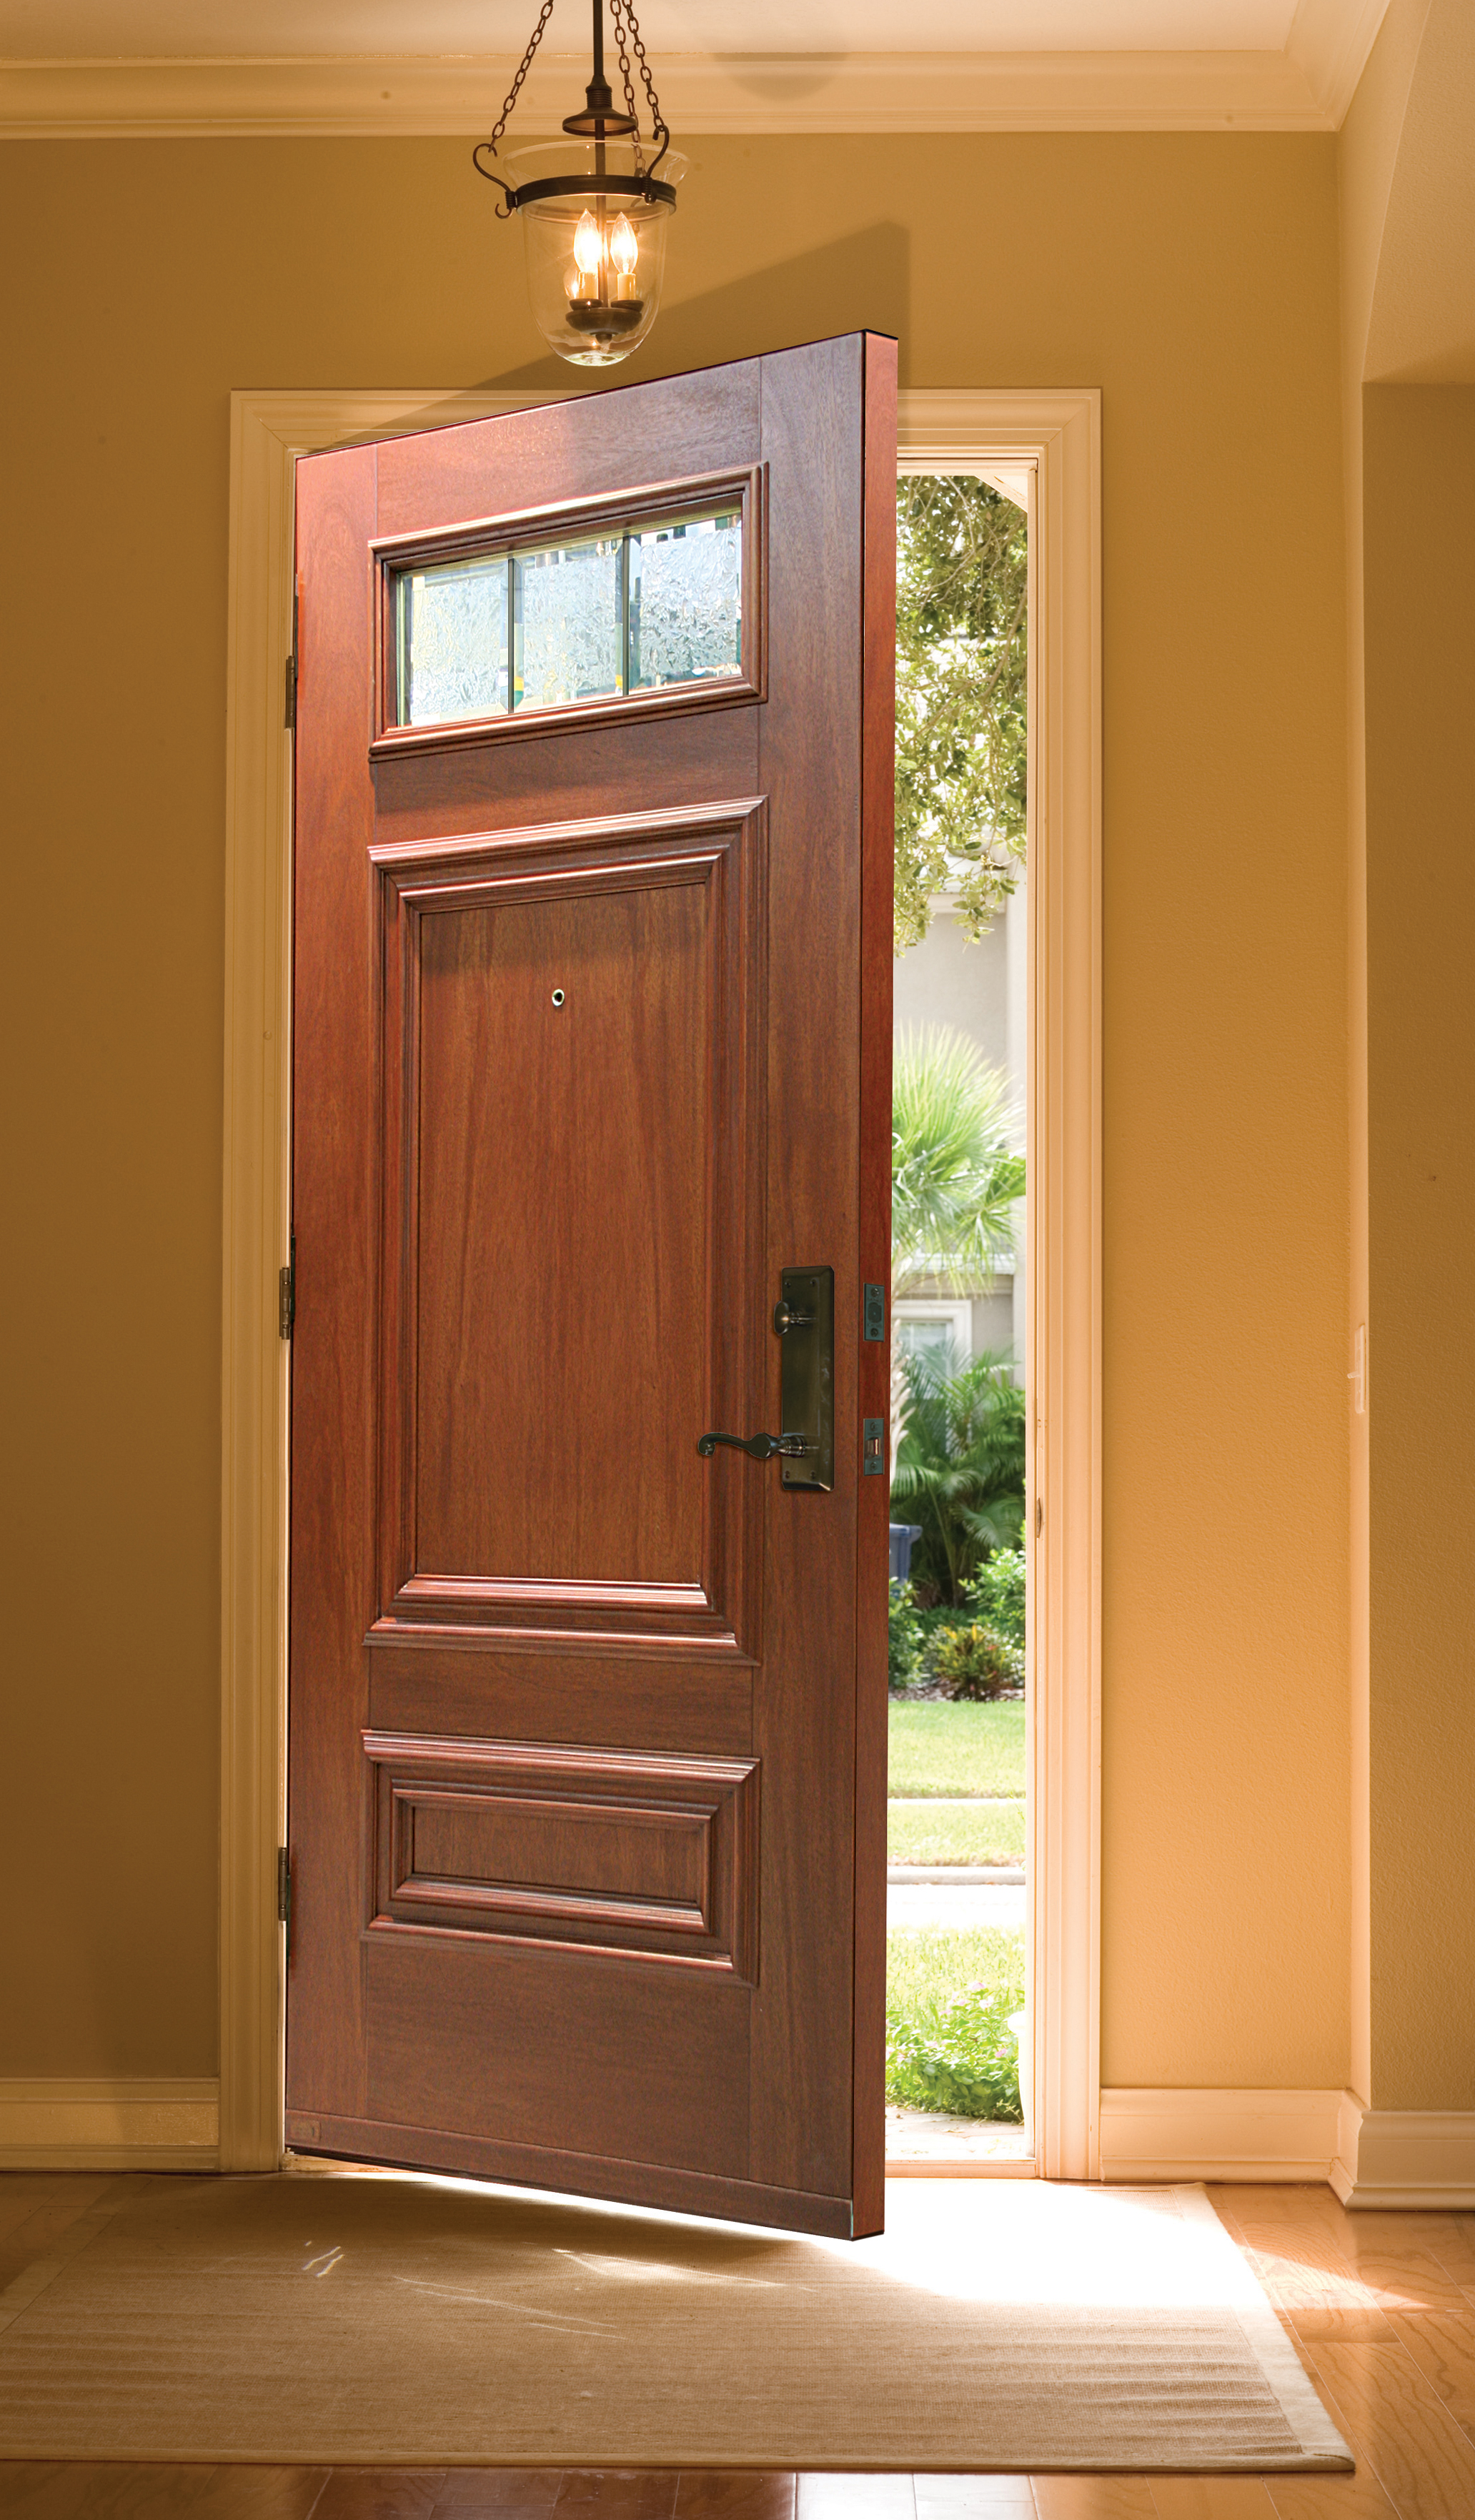 Porte simple avec finition de bois int rieure cerisier for Porte interieur de maison